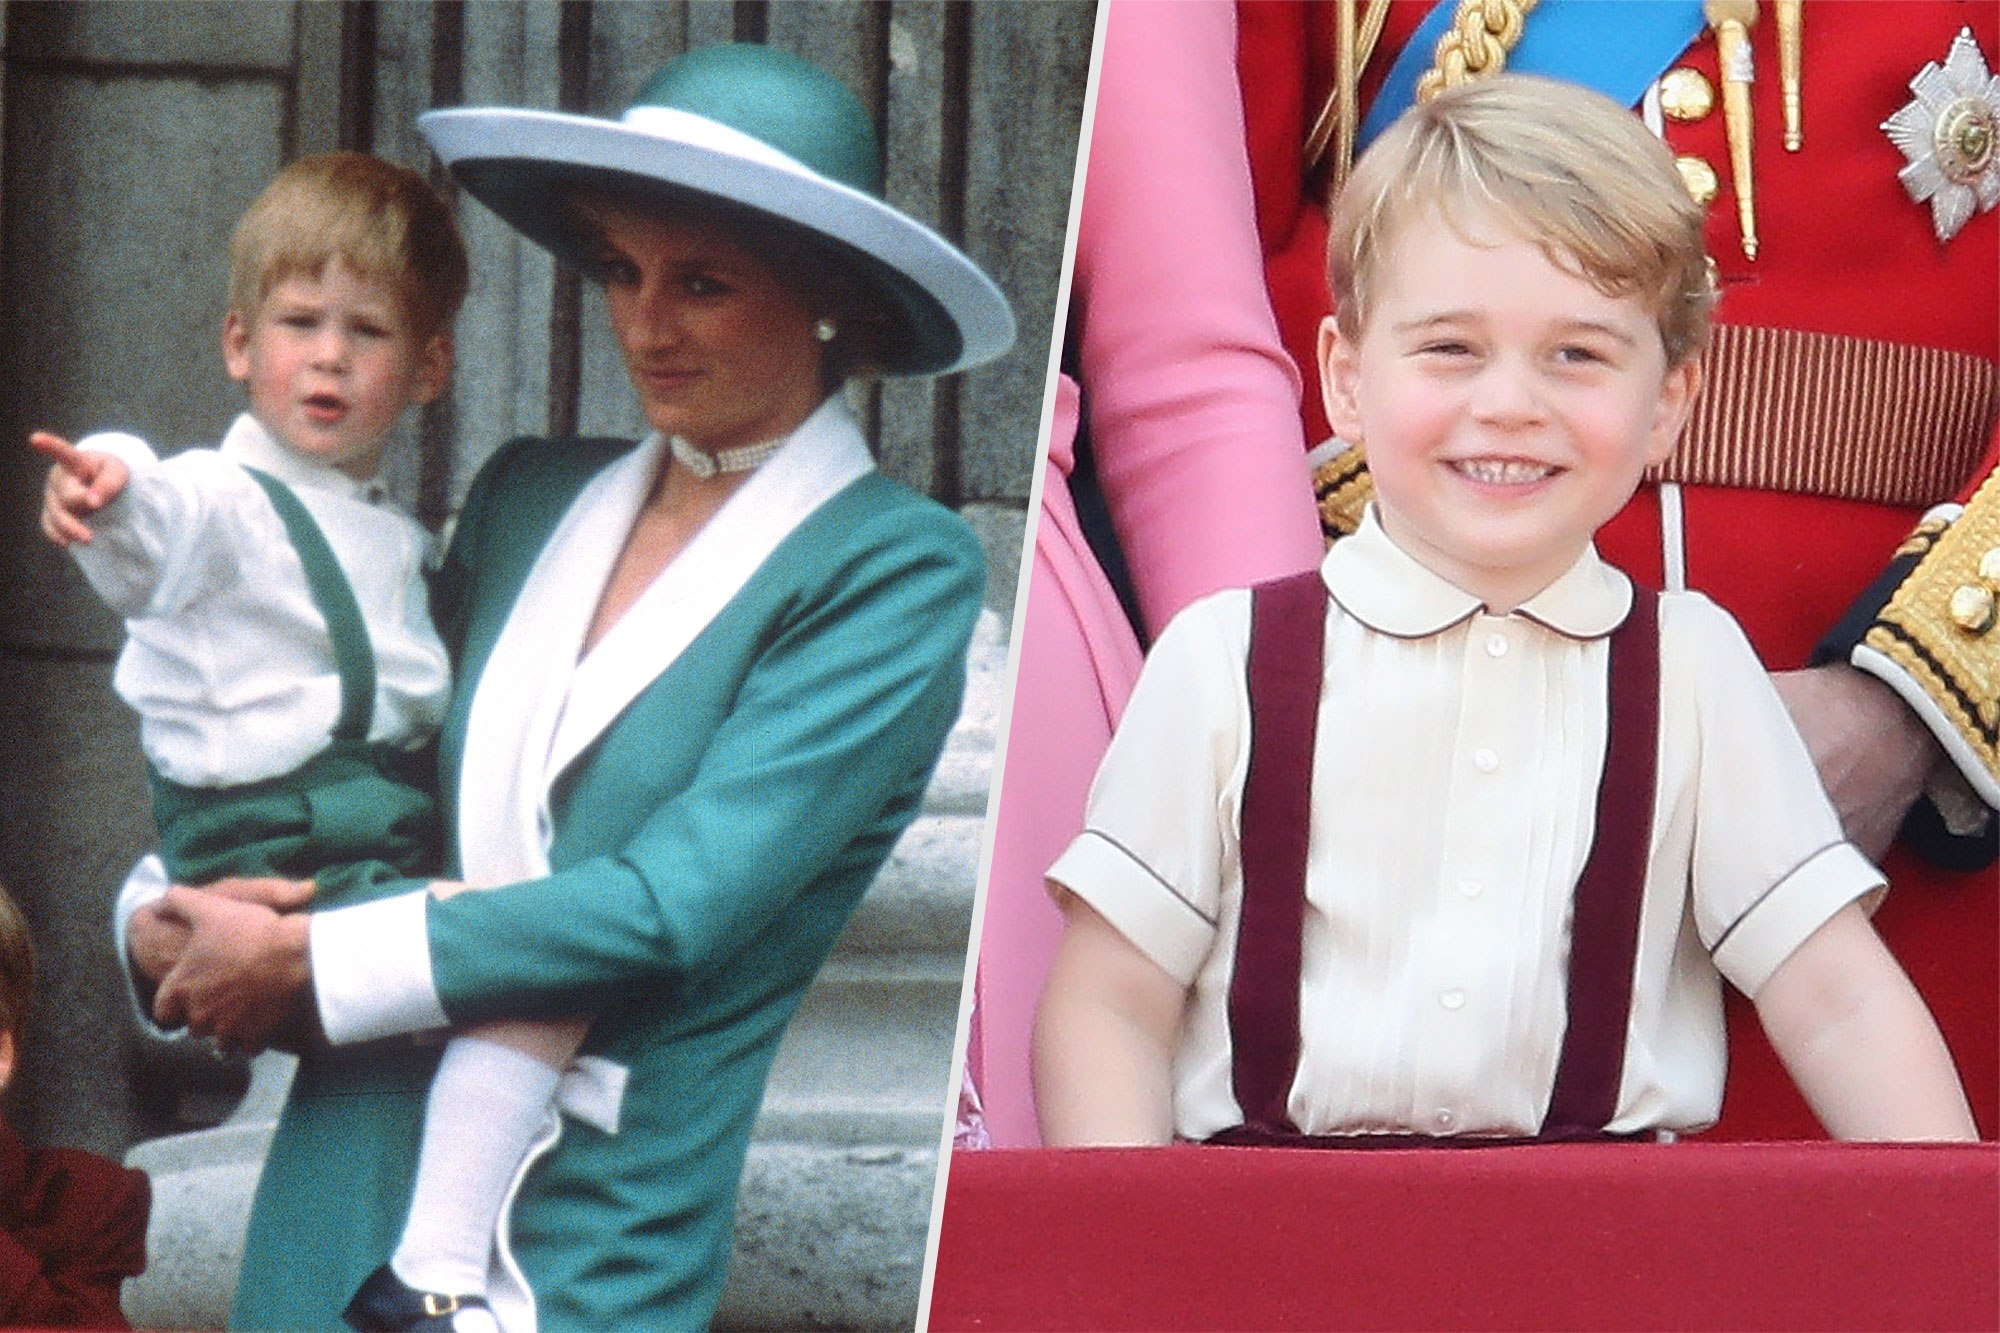 For this year's parade, George was joined on the balcony by the other senior royals and his little sister, Princess Charlotte, who wore a pink dress. ANWAR HUSSEIN/GETTY IMAGES; CHRIS JACKSON/GETTY IMAGES